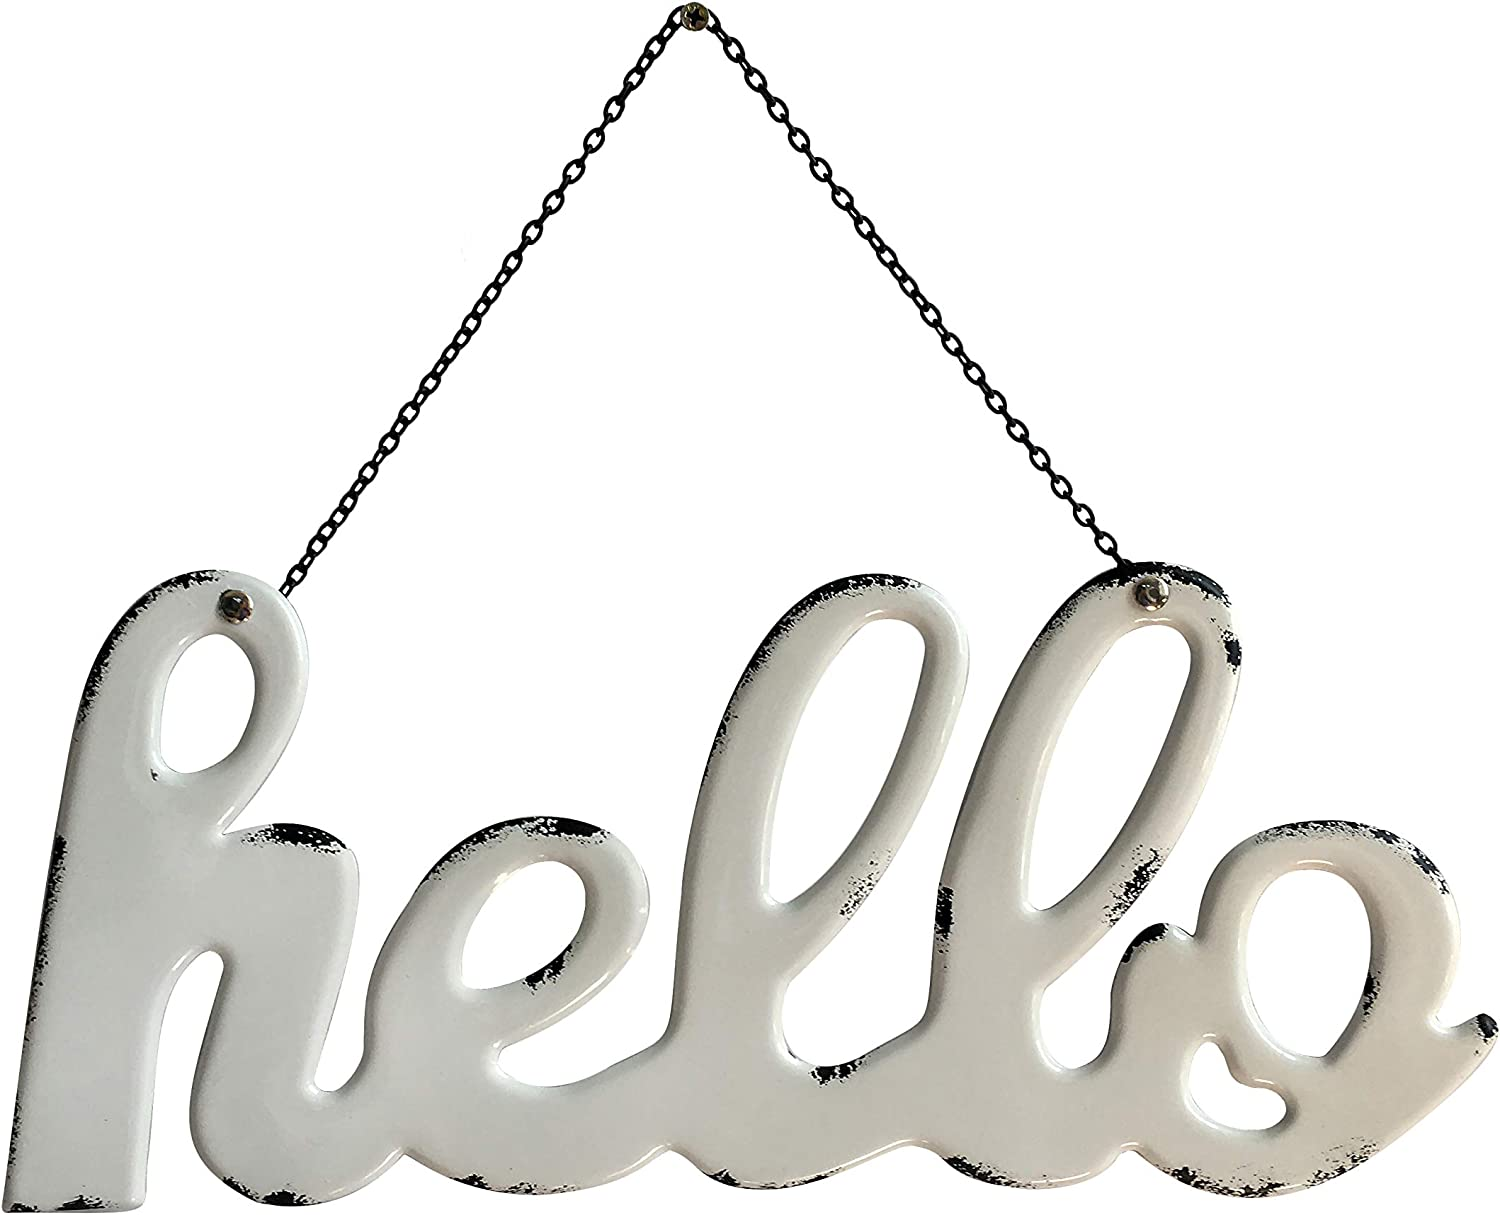 Pridecreation Large Hello Signs Metal Wall Hanging Art, 16x7 inch Rustic Farmhouse Enamel White Home Sign Decor Script, Letters Gift for Front Door Porch Living Room Kitchen Bathroom Wedding Birthday Party (Black & White)